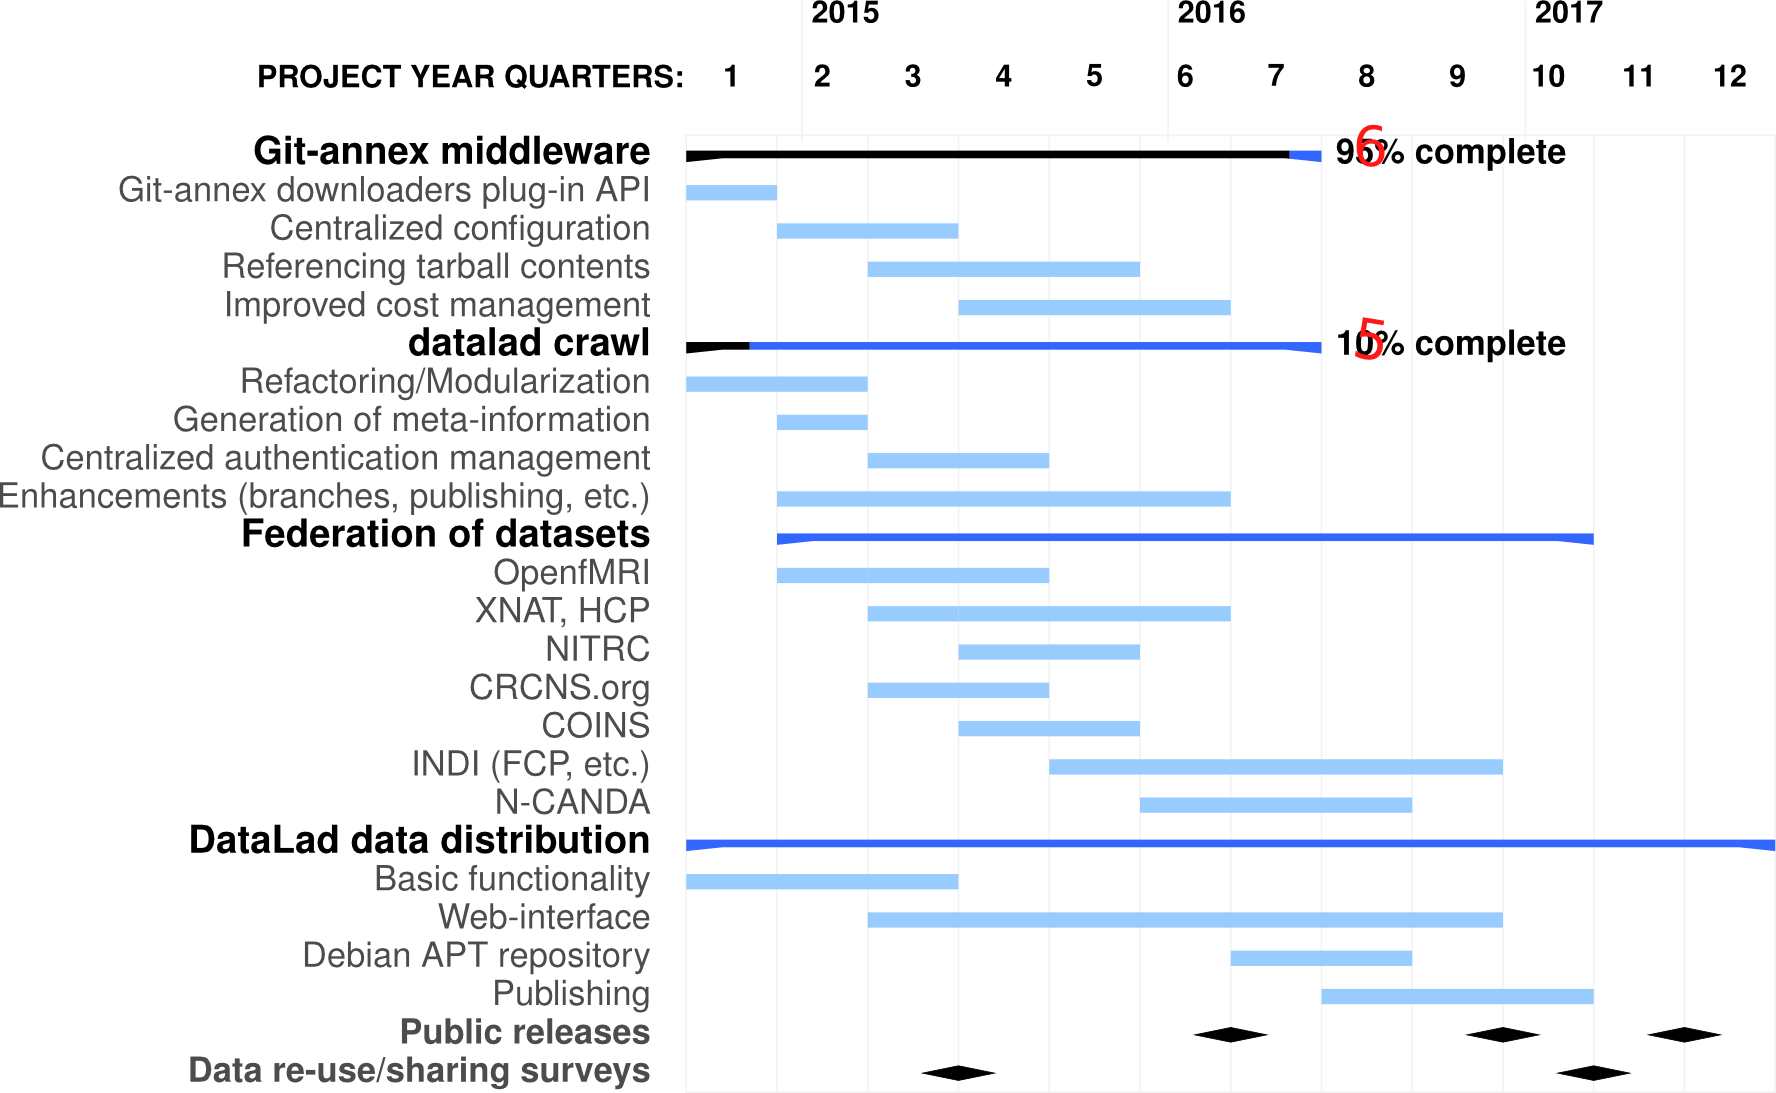 Perspective timeline and major for major sub-projects of DataLad project.